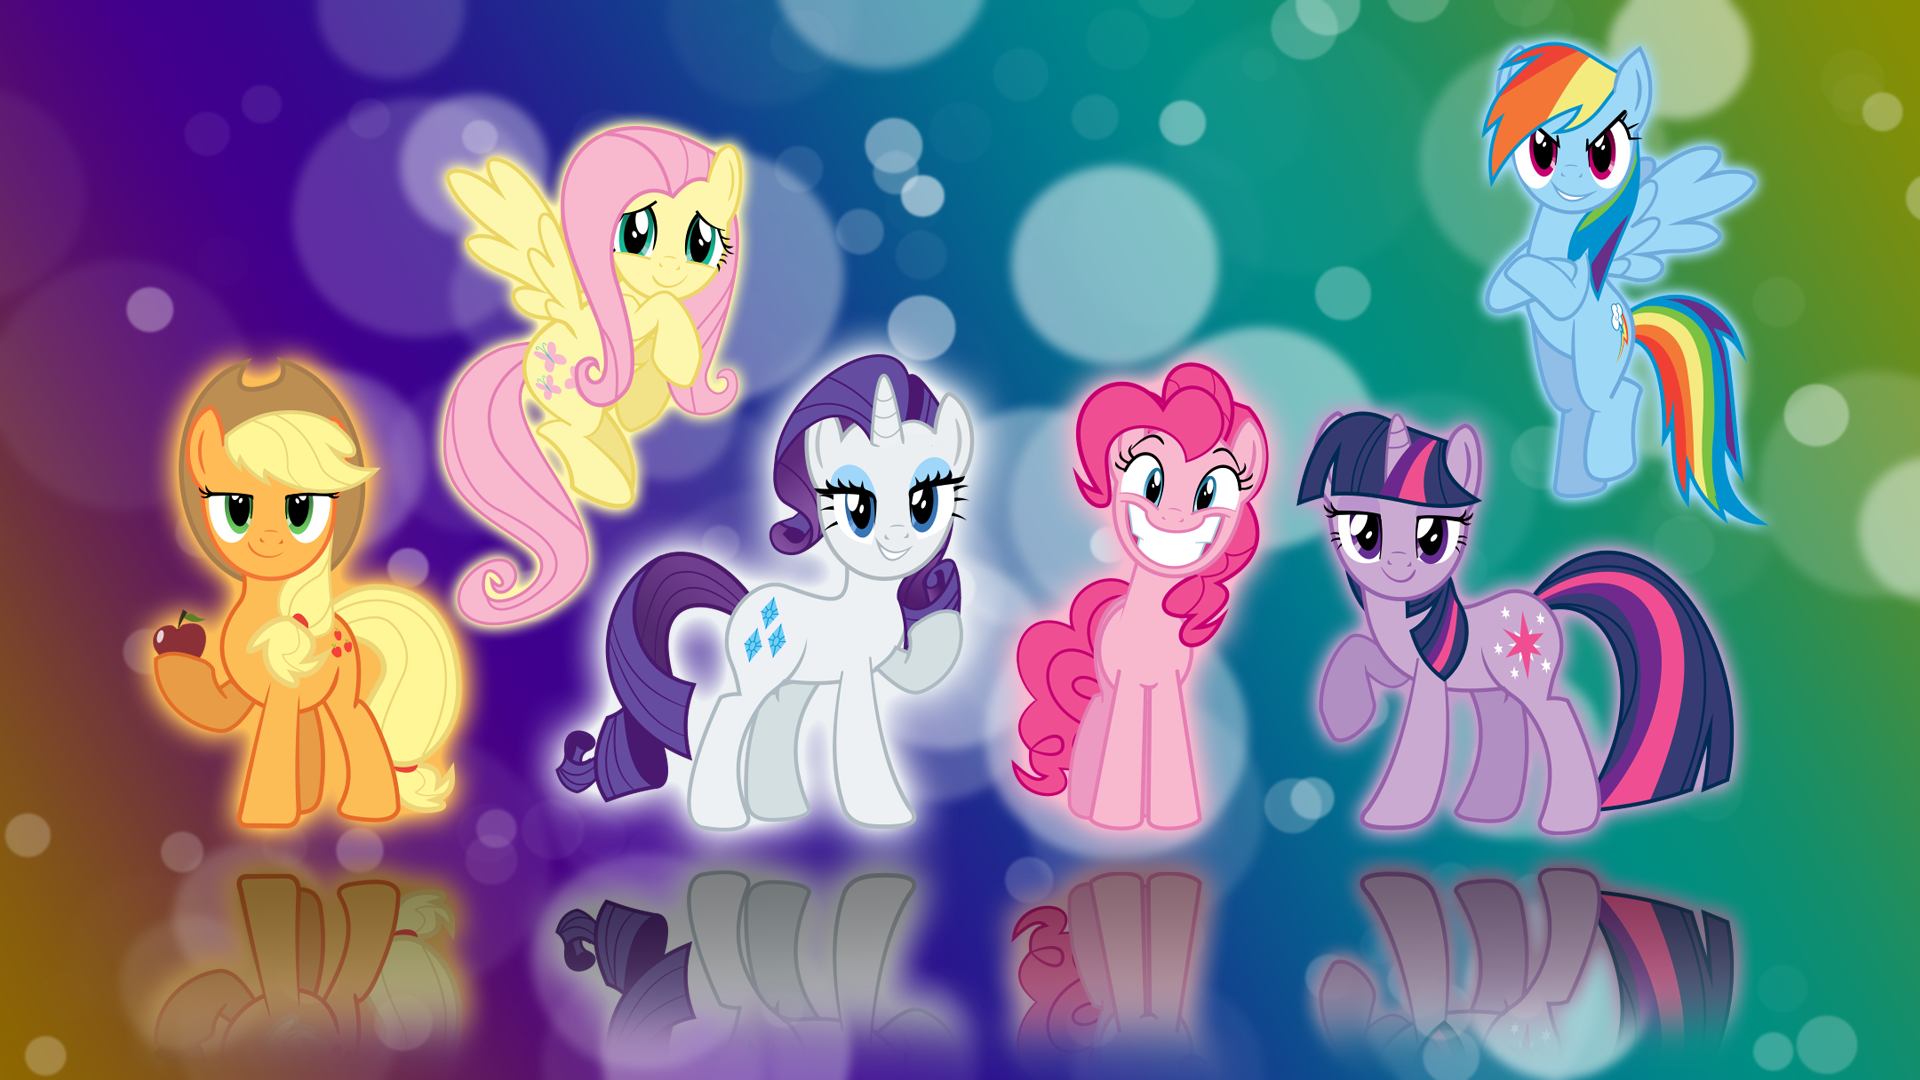 Wallpapers de My little pony: Friendship is Magic - Taringa!